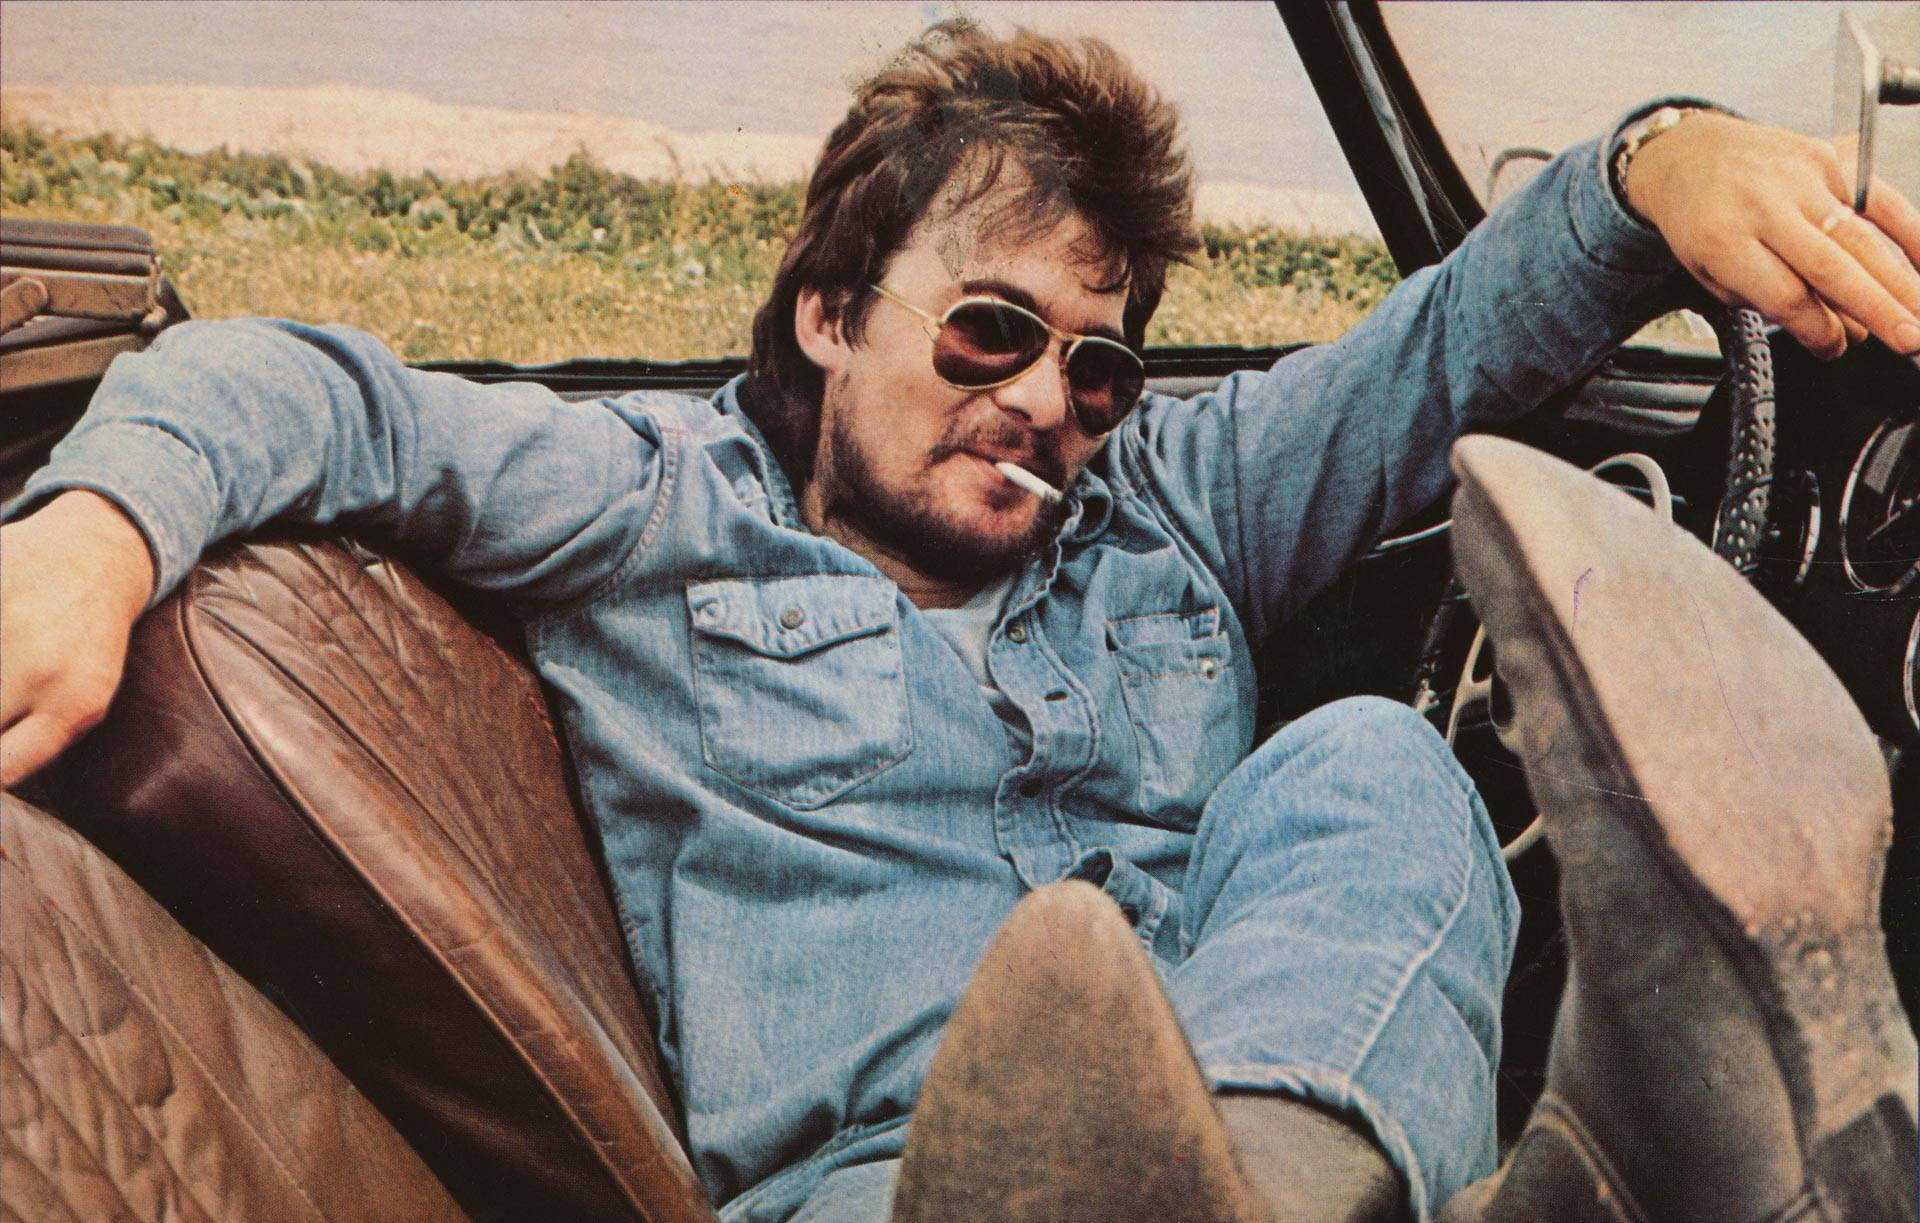 John Prine in the 1970s. Atlantic Records